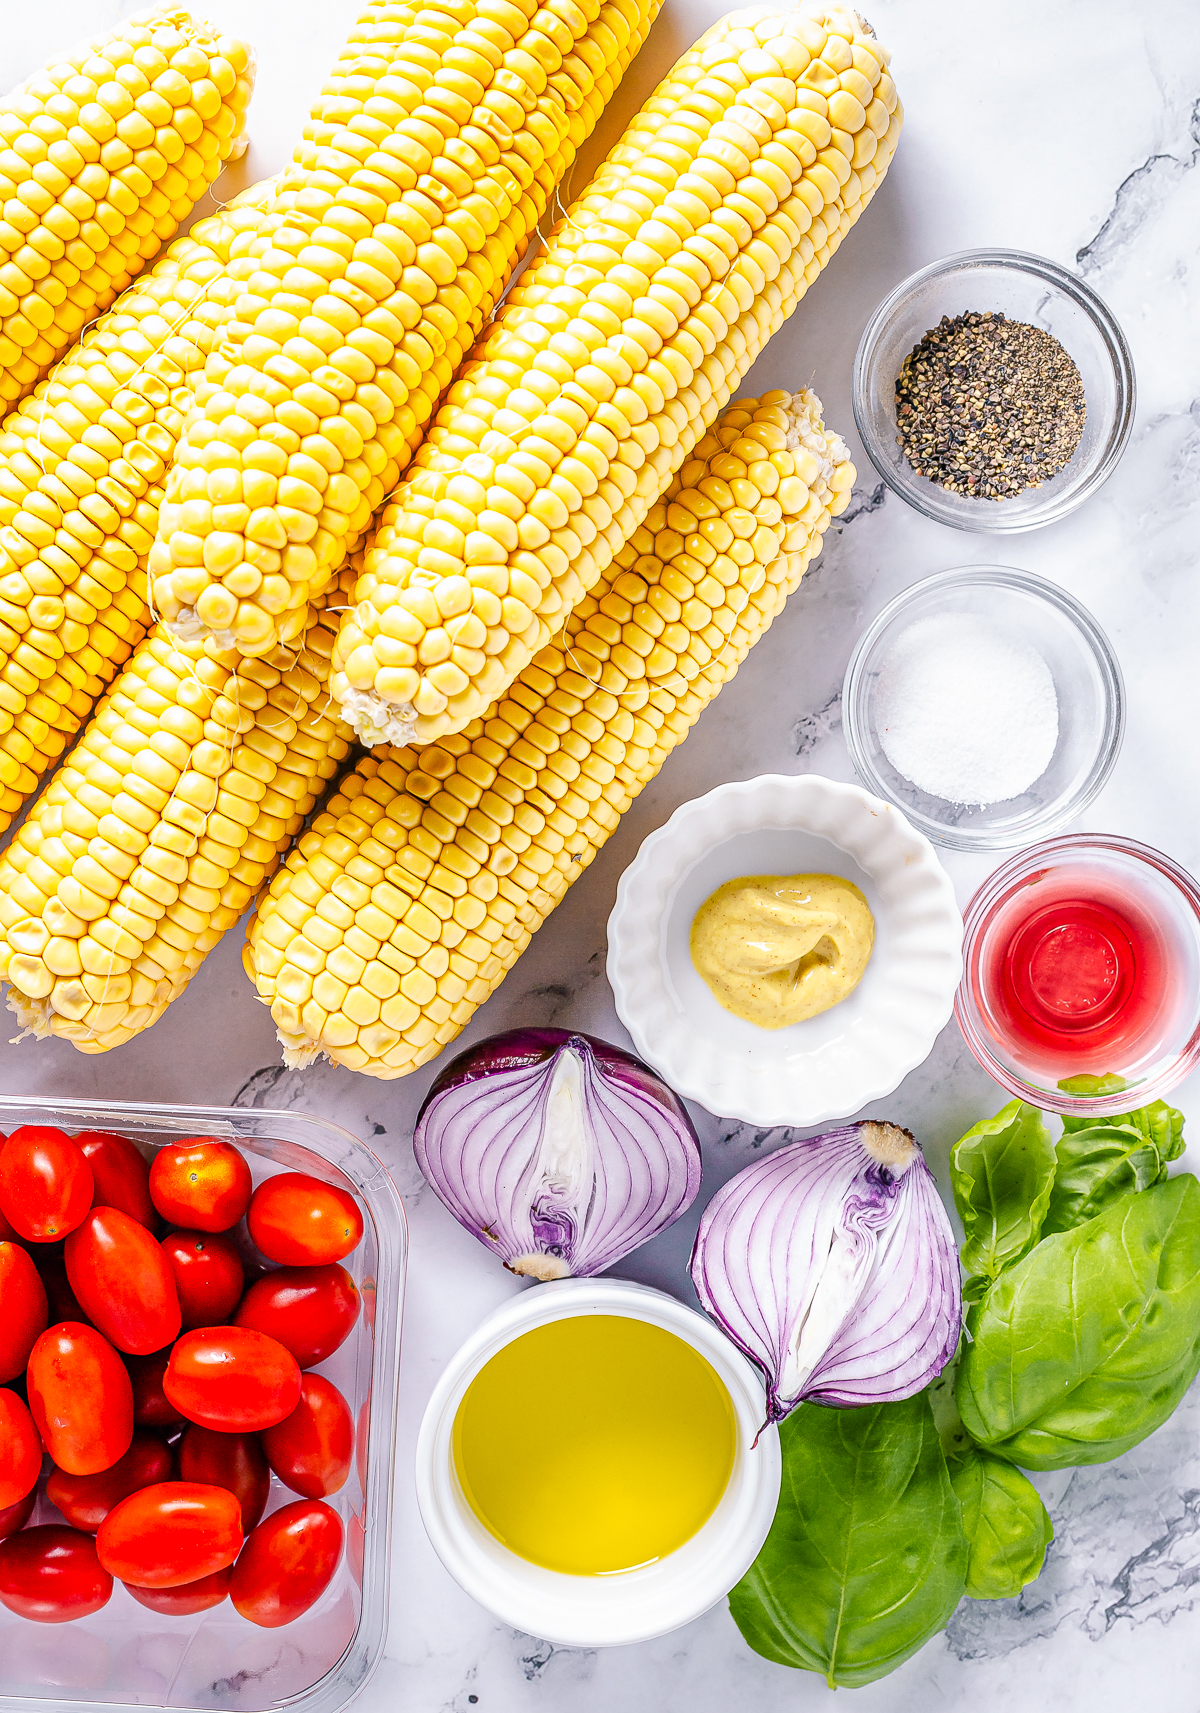 Ingredients needed to make Corn and Tomato Salad